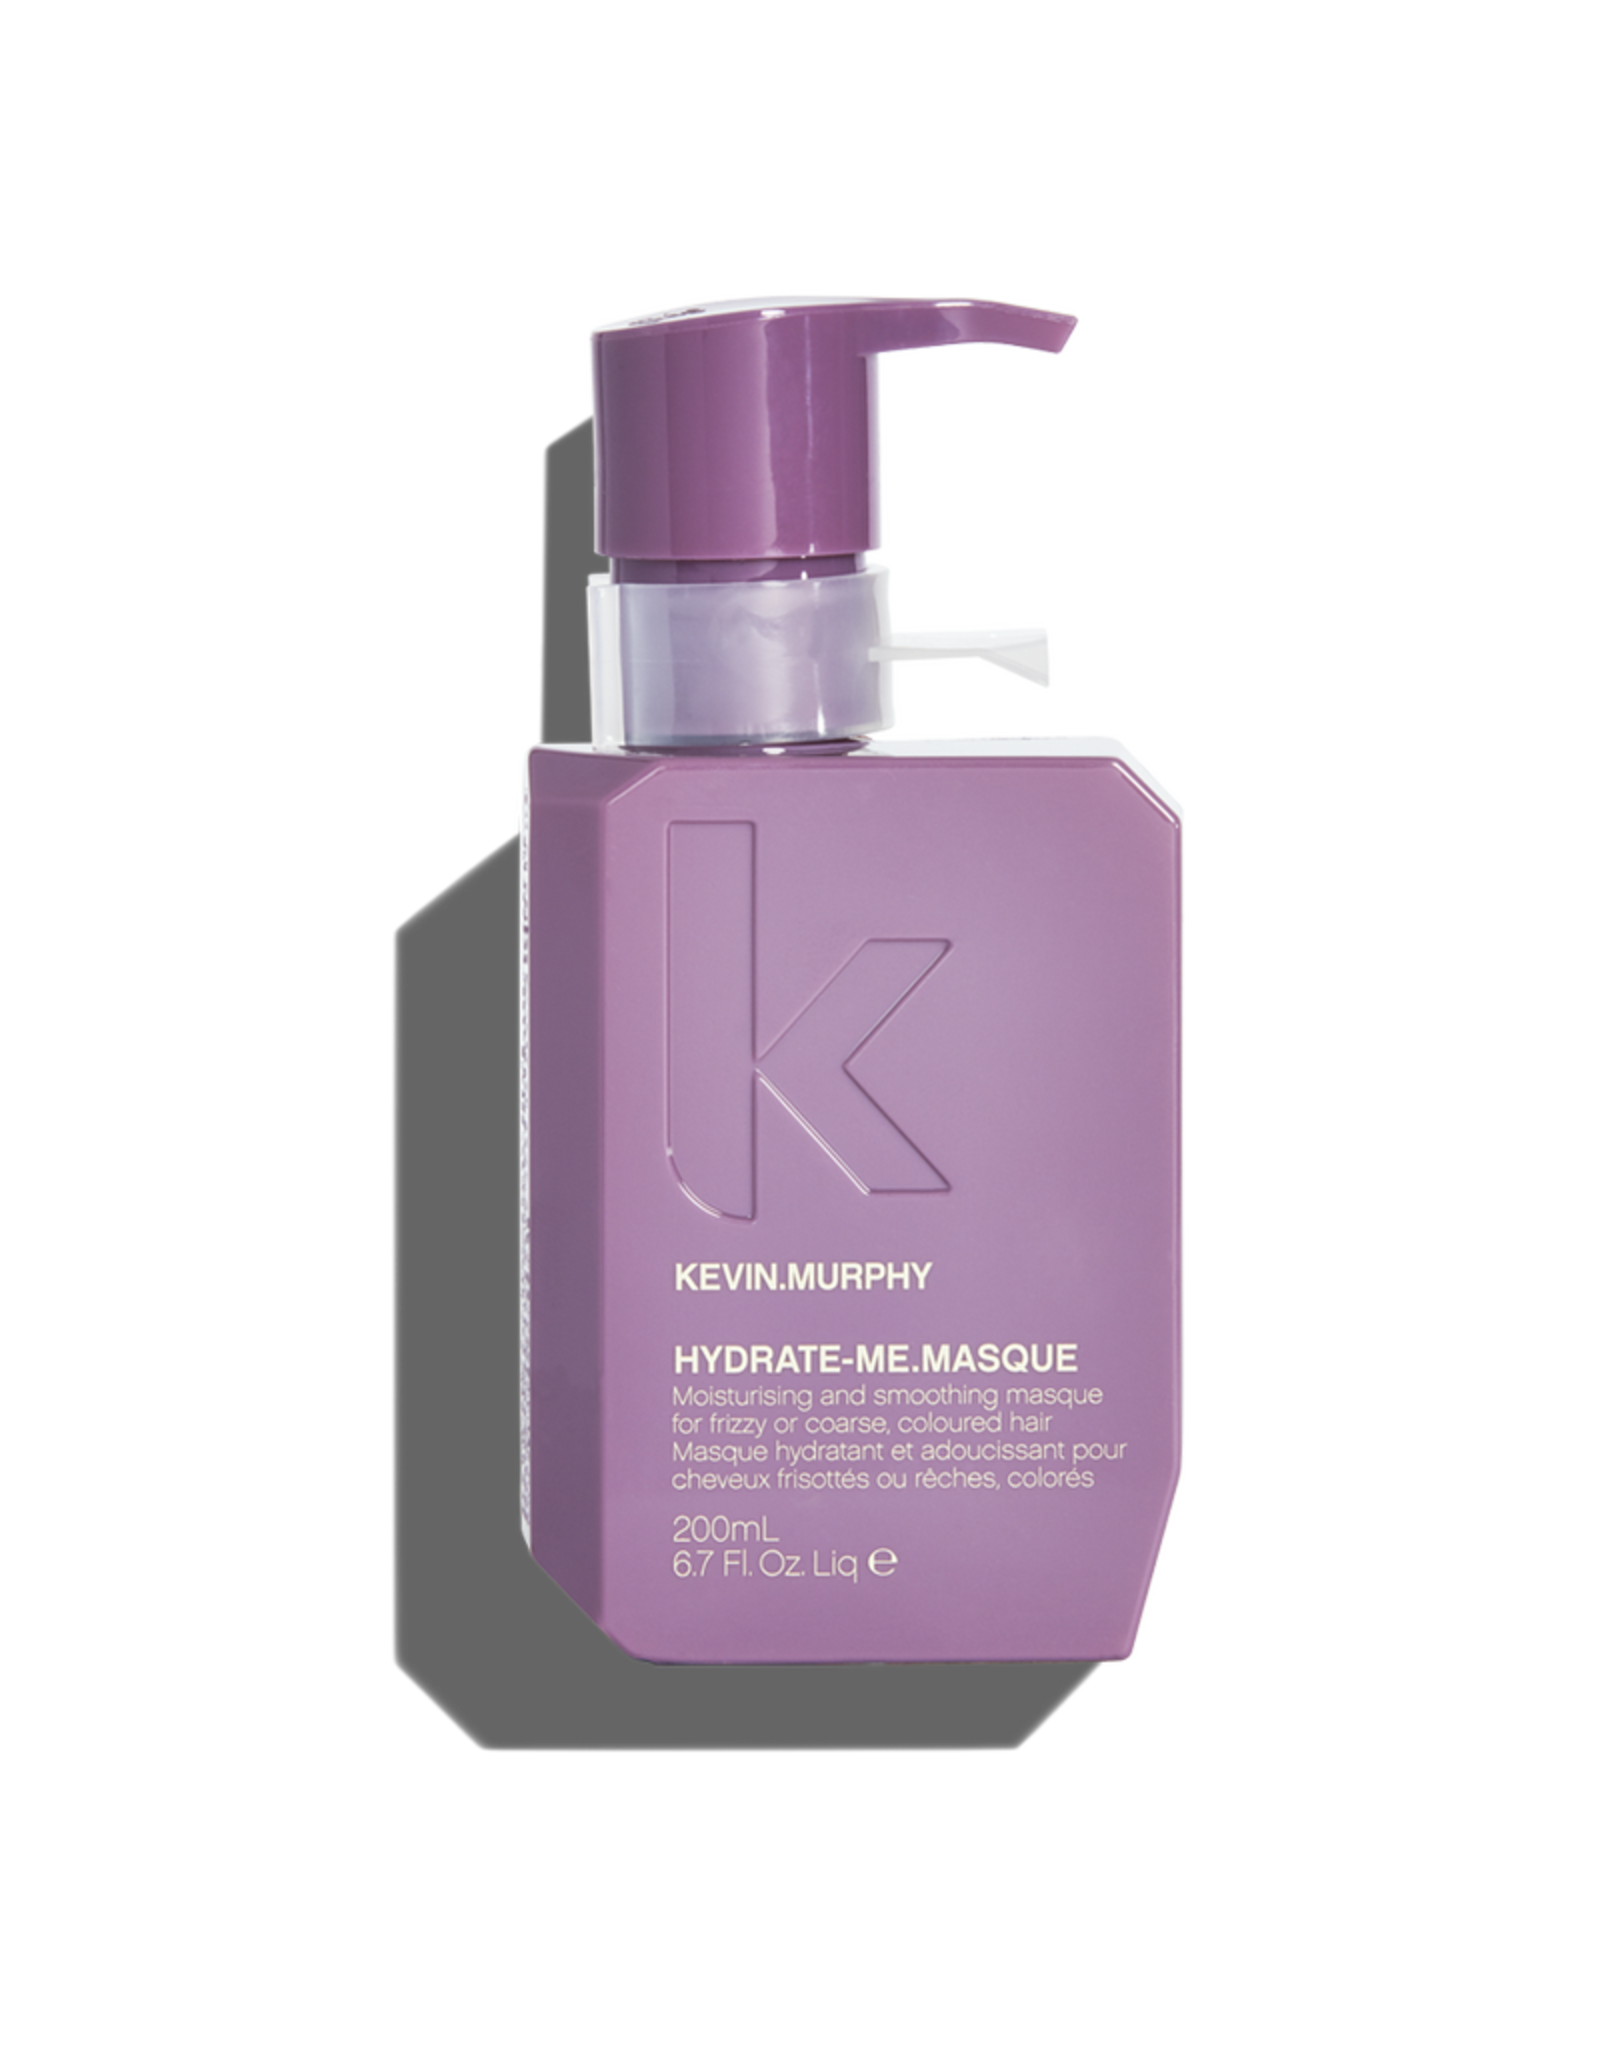 KEVIN.MURPHY Hydrate.Me.Masque (200 ml)